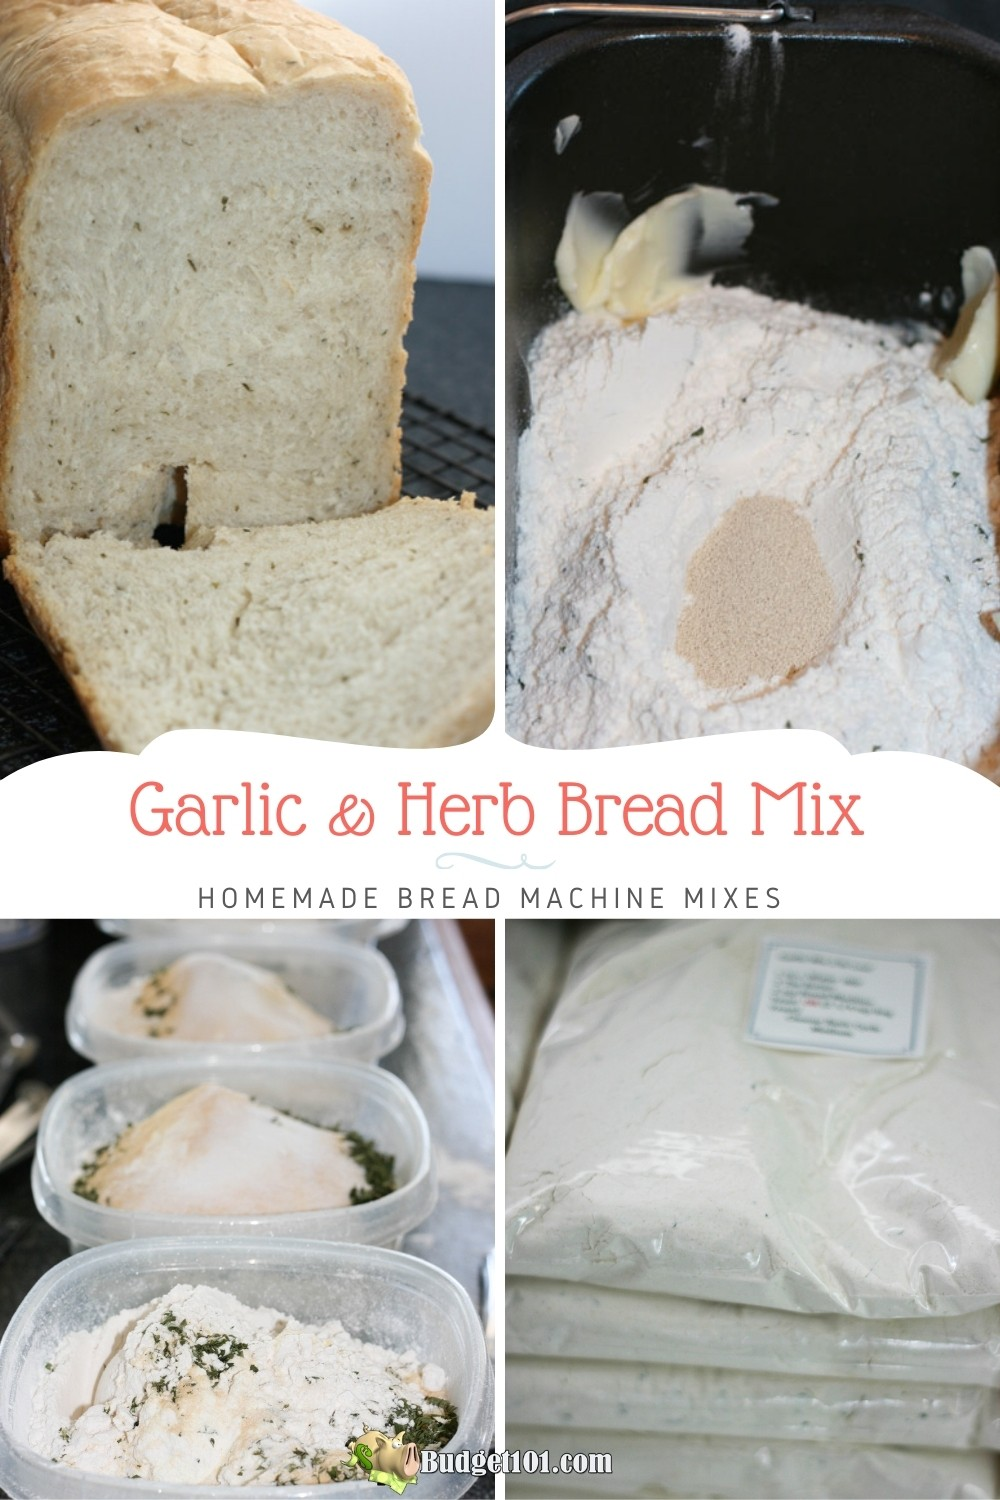 Make your own Garlic & Herb Bread Mix for Bread Machines- this delicious, simple recipe makes creating homemade flavorful garlic bread a breeze! #GarlicBread #BreadMachineMixes #MYO #breadmixes